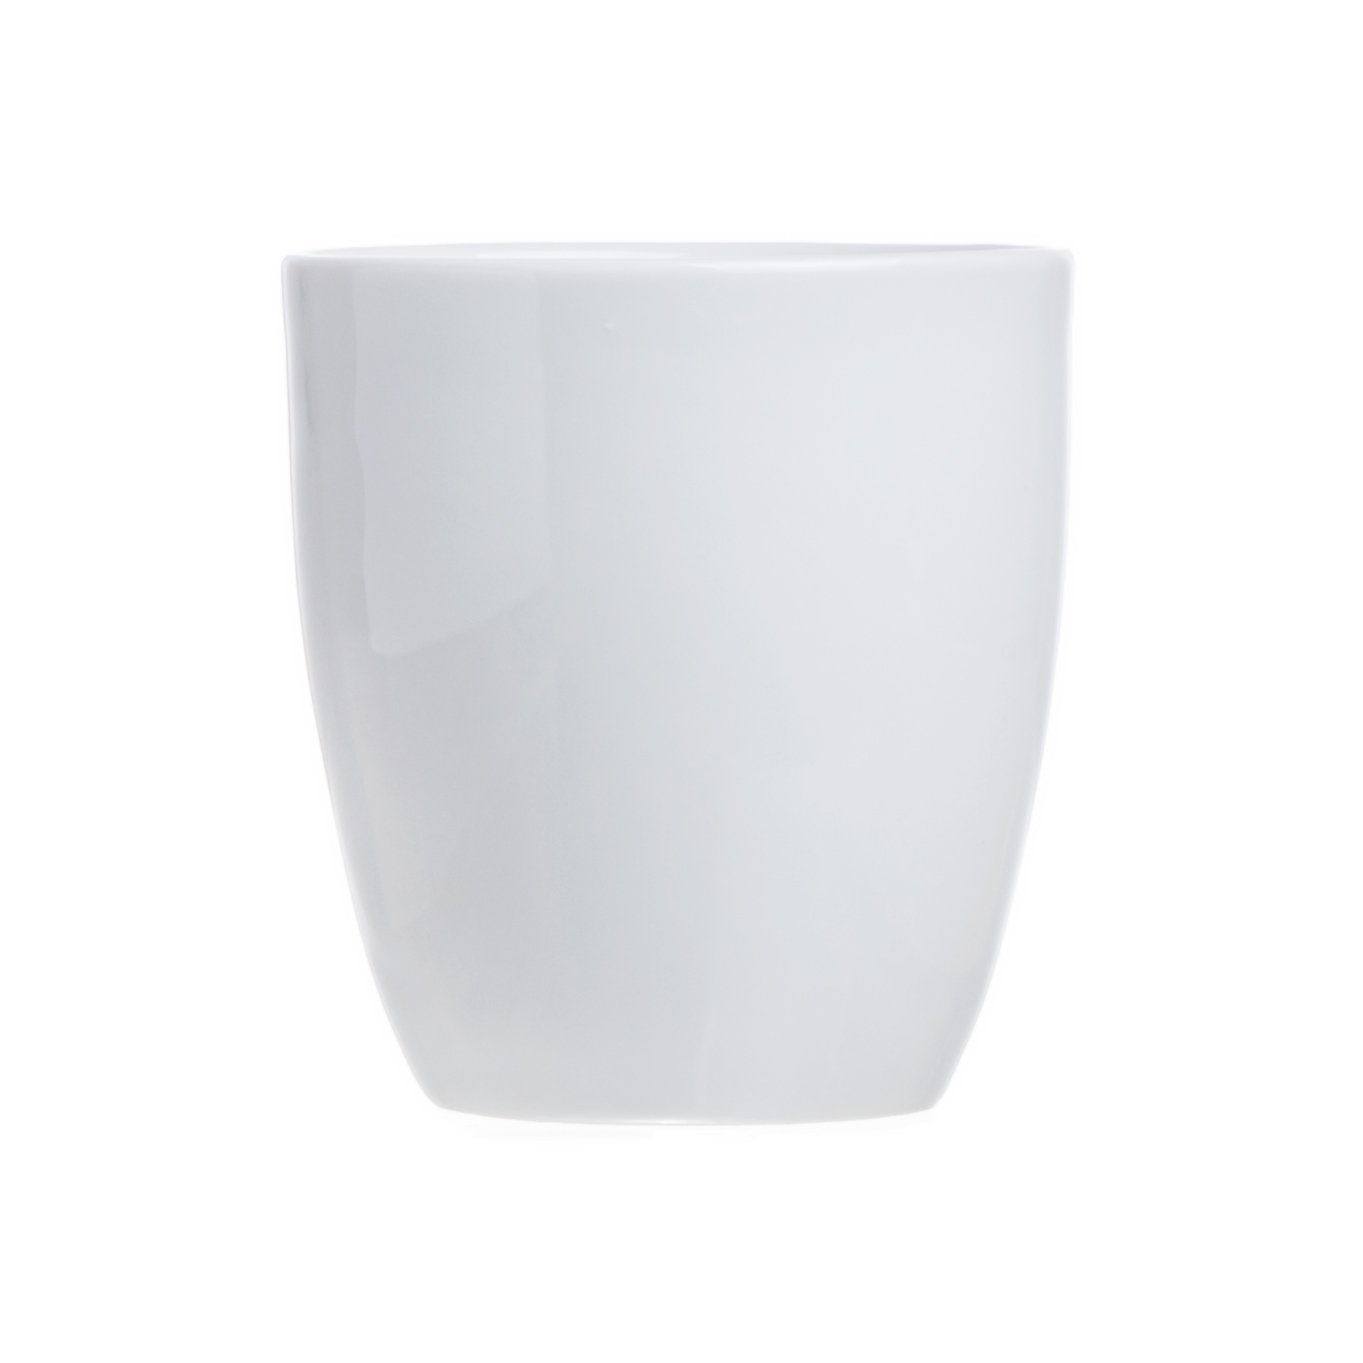 6-Piece Tea/Coffee Mugs (without Handle), White Porcelain, 9 Oz., Restaurant&Hotel Quality